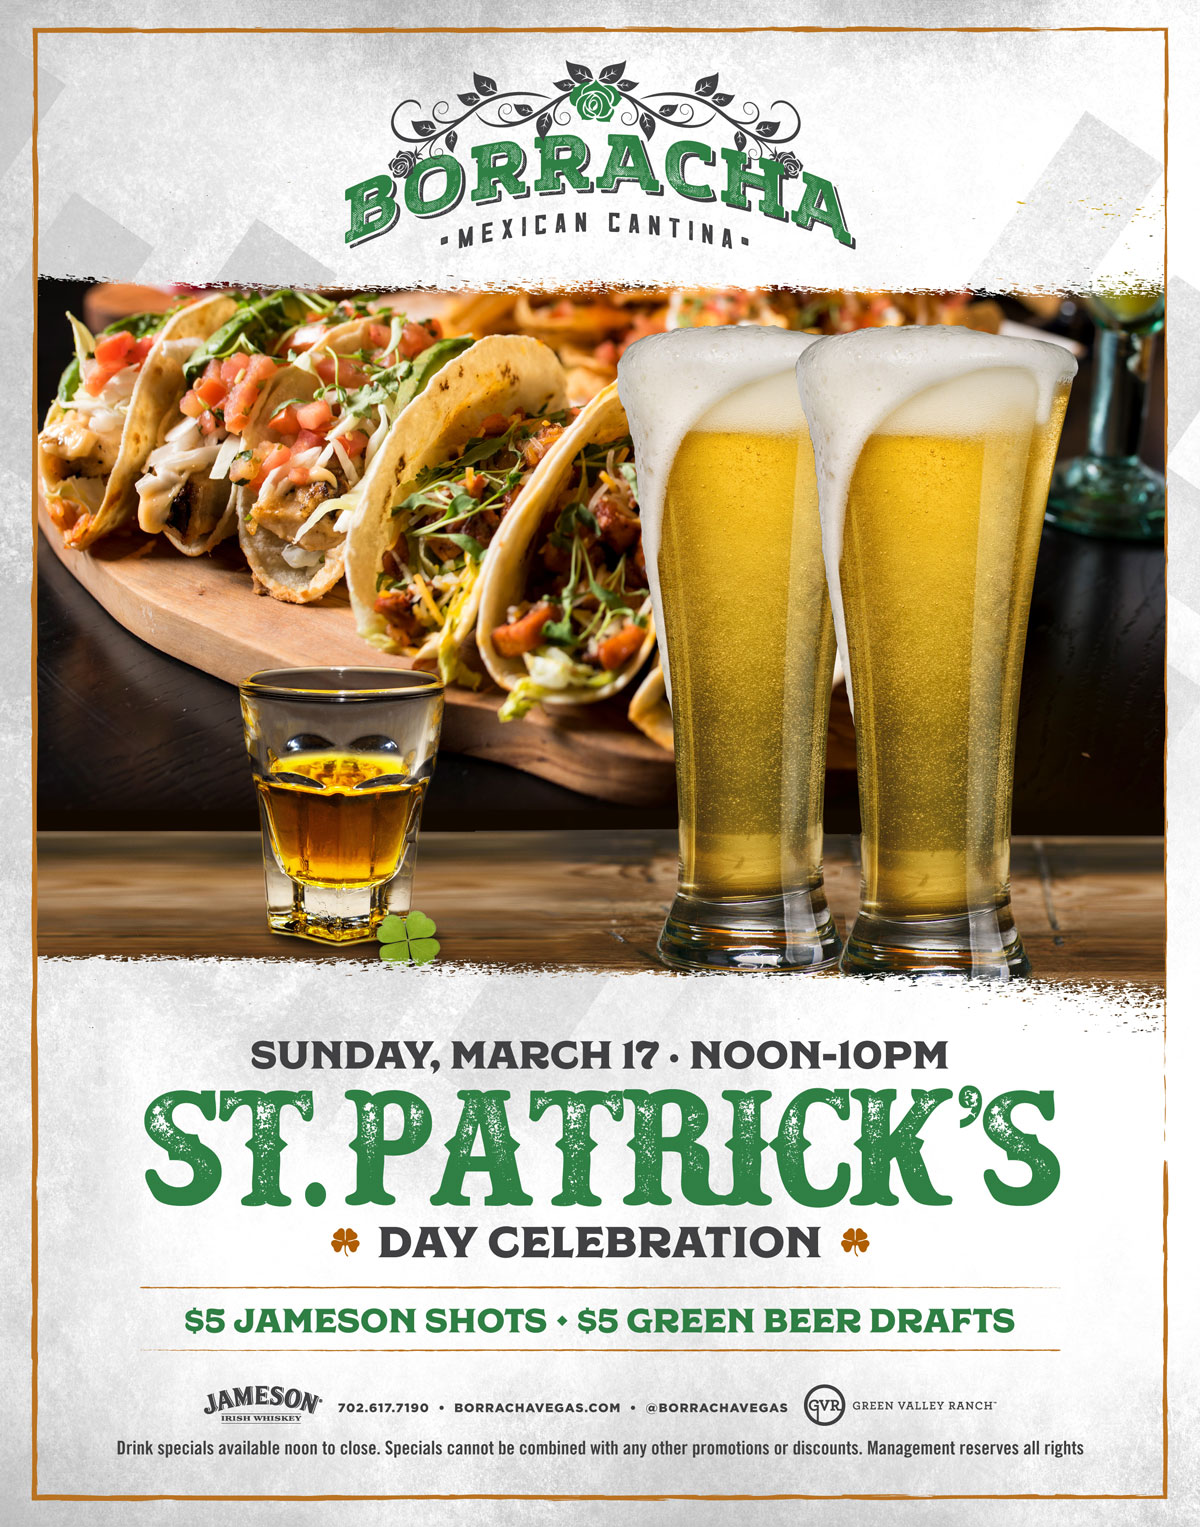 st patrick's day at borracha